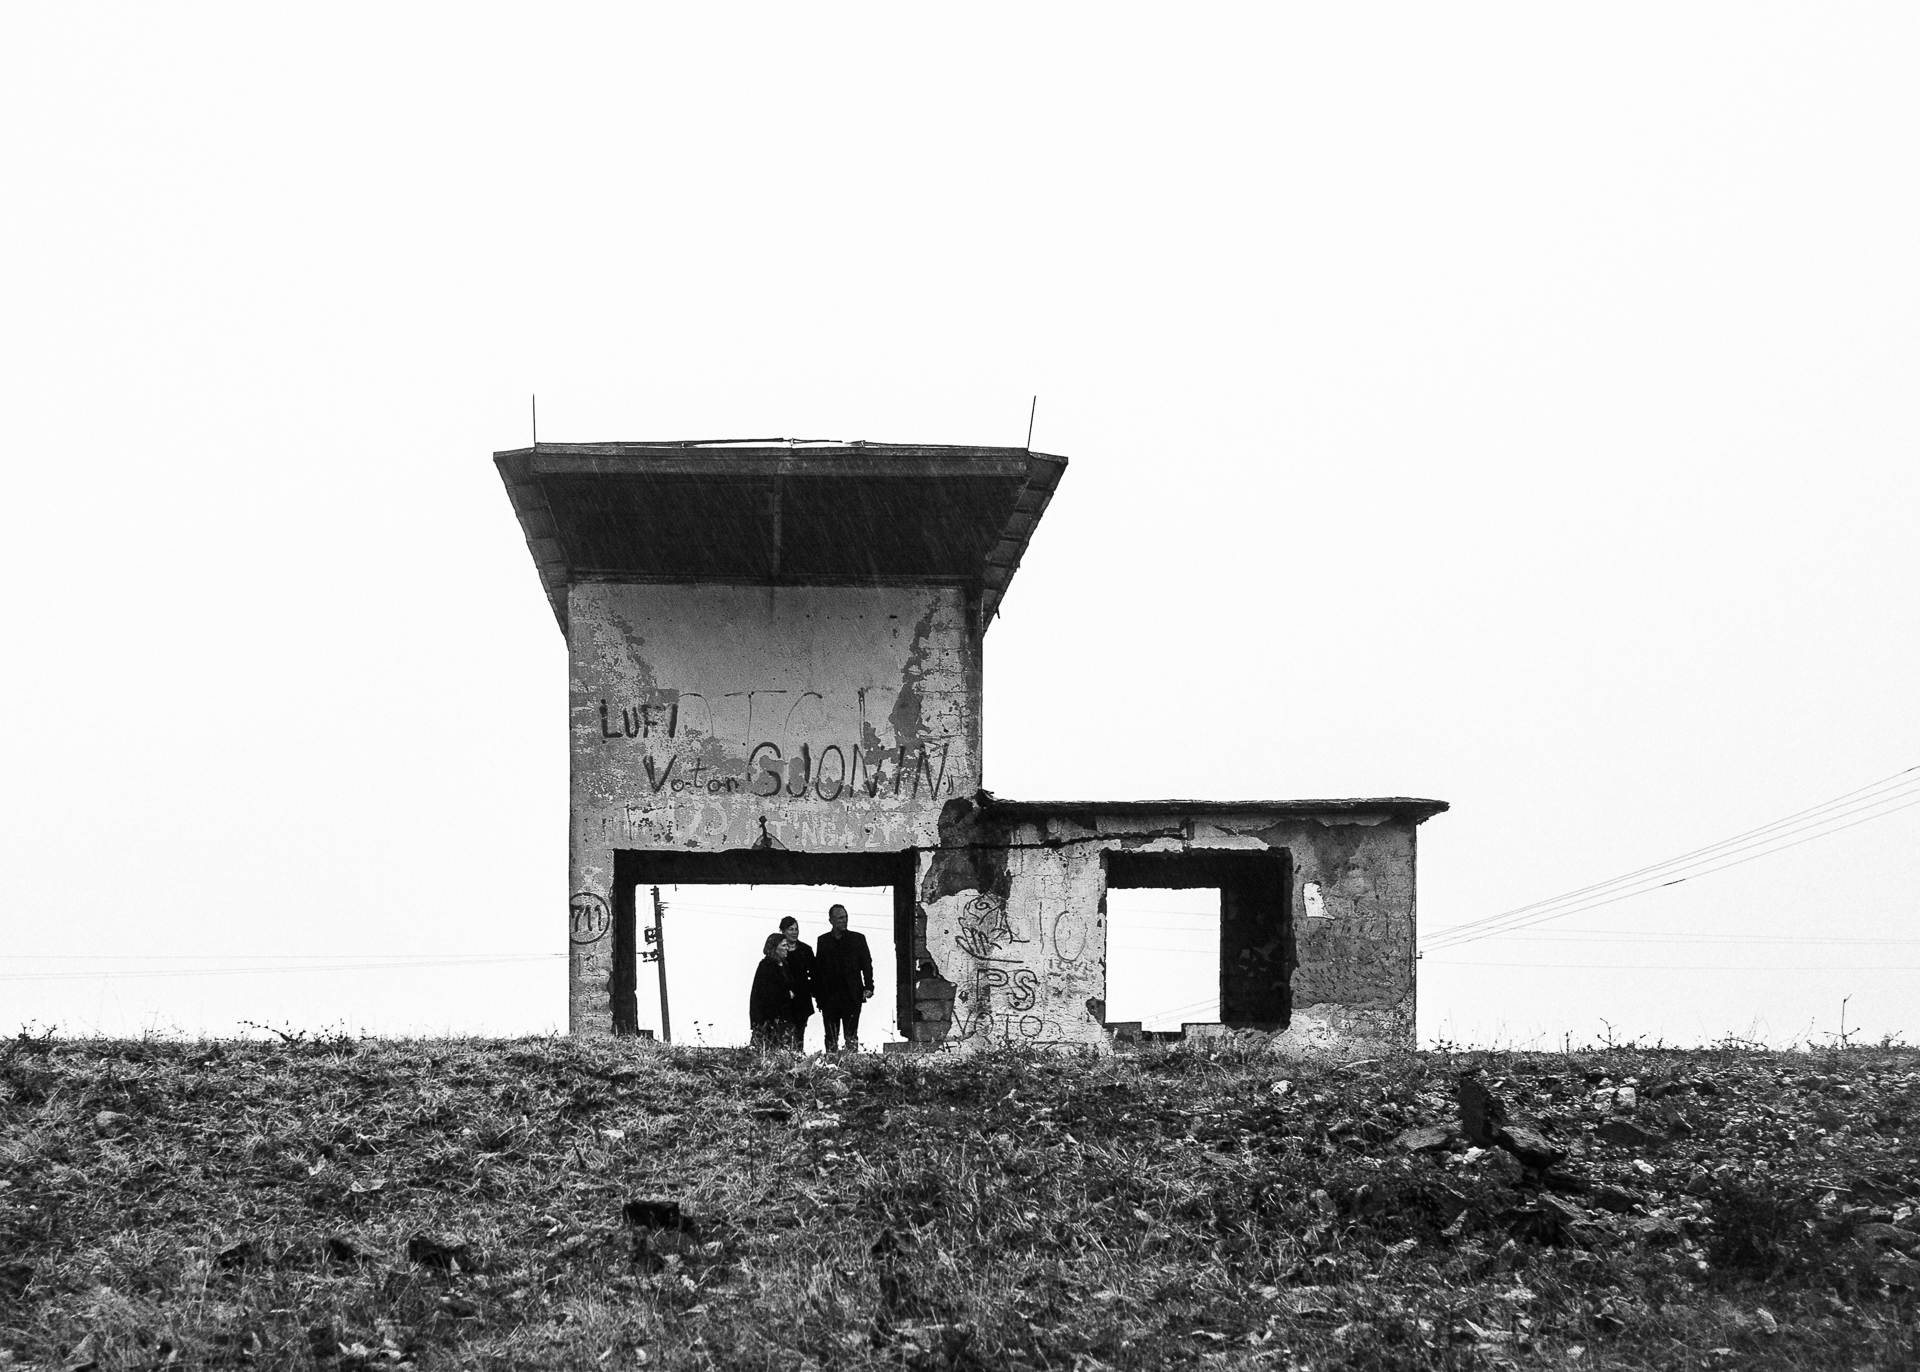 Tasos Koutsiaftis, Albania, common routes, project, photography